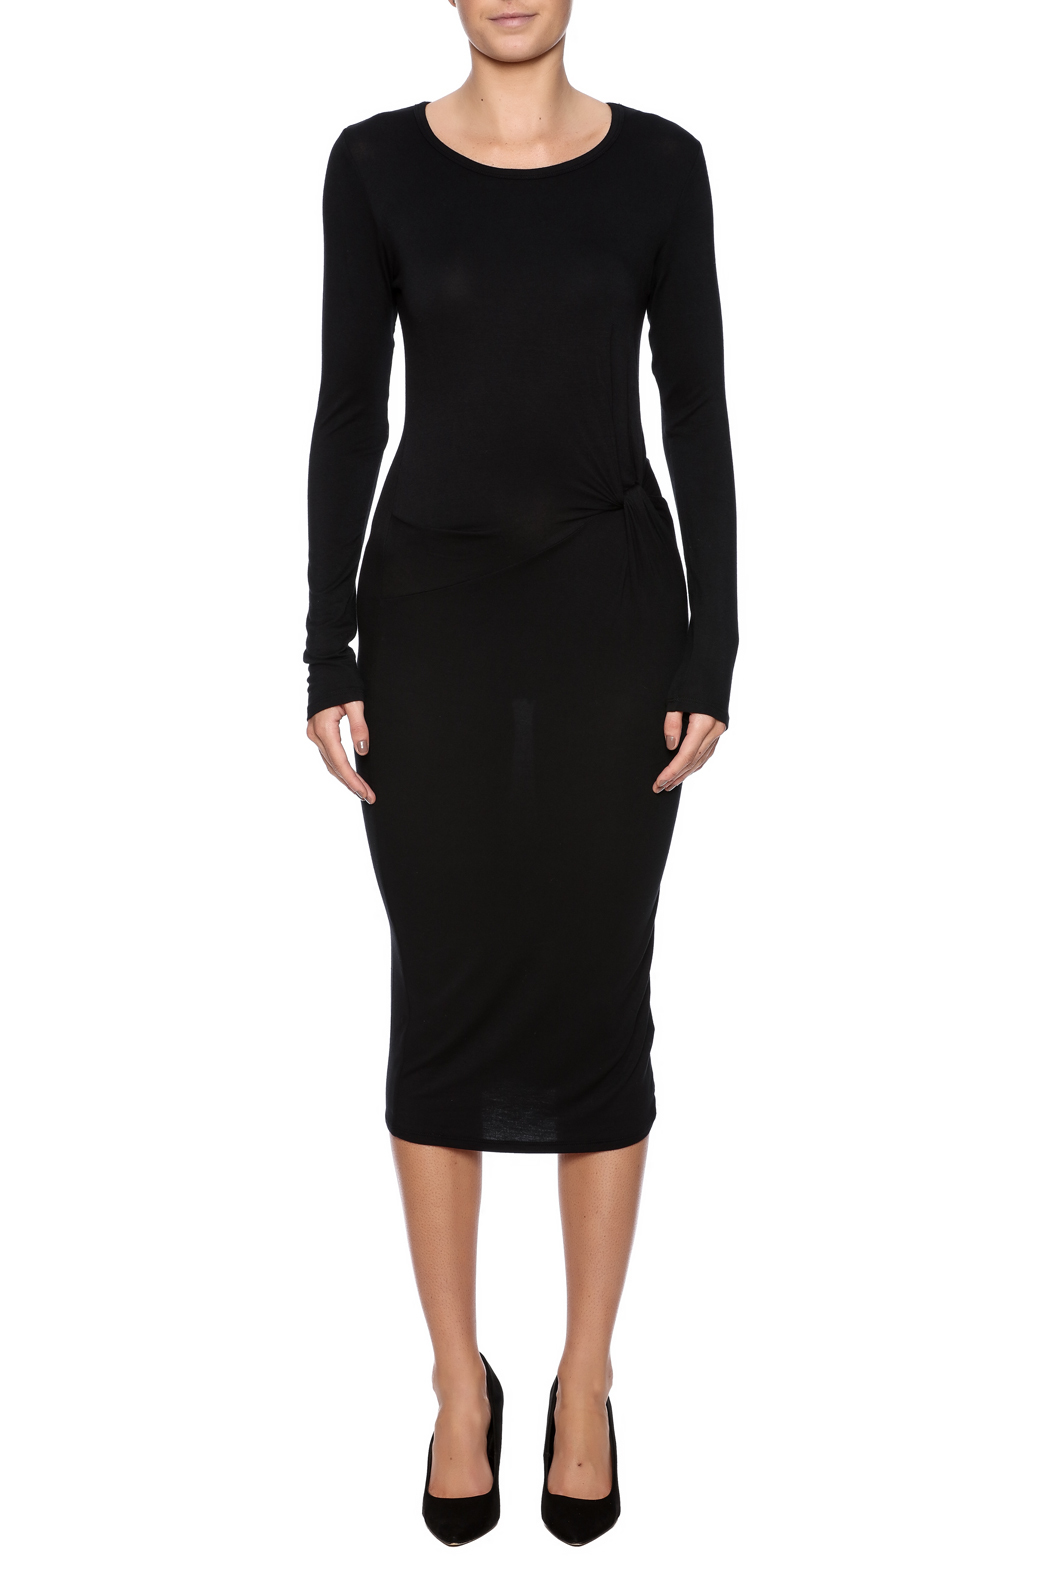 onetheland Knot Tie Dress - Front Cropped Image